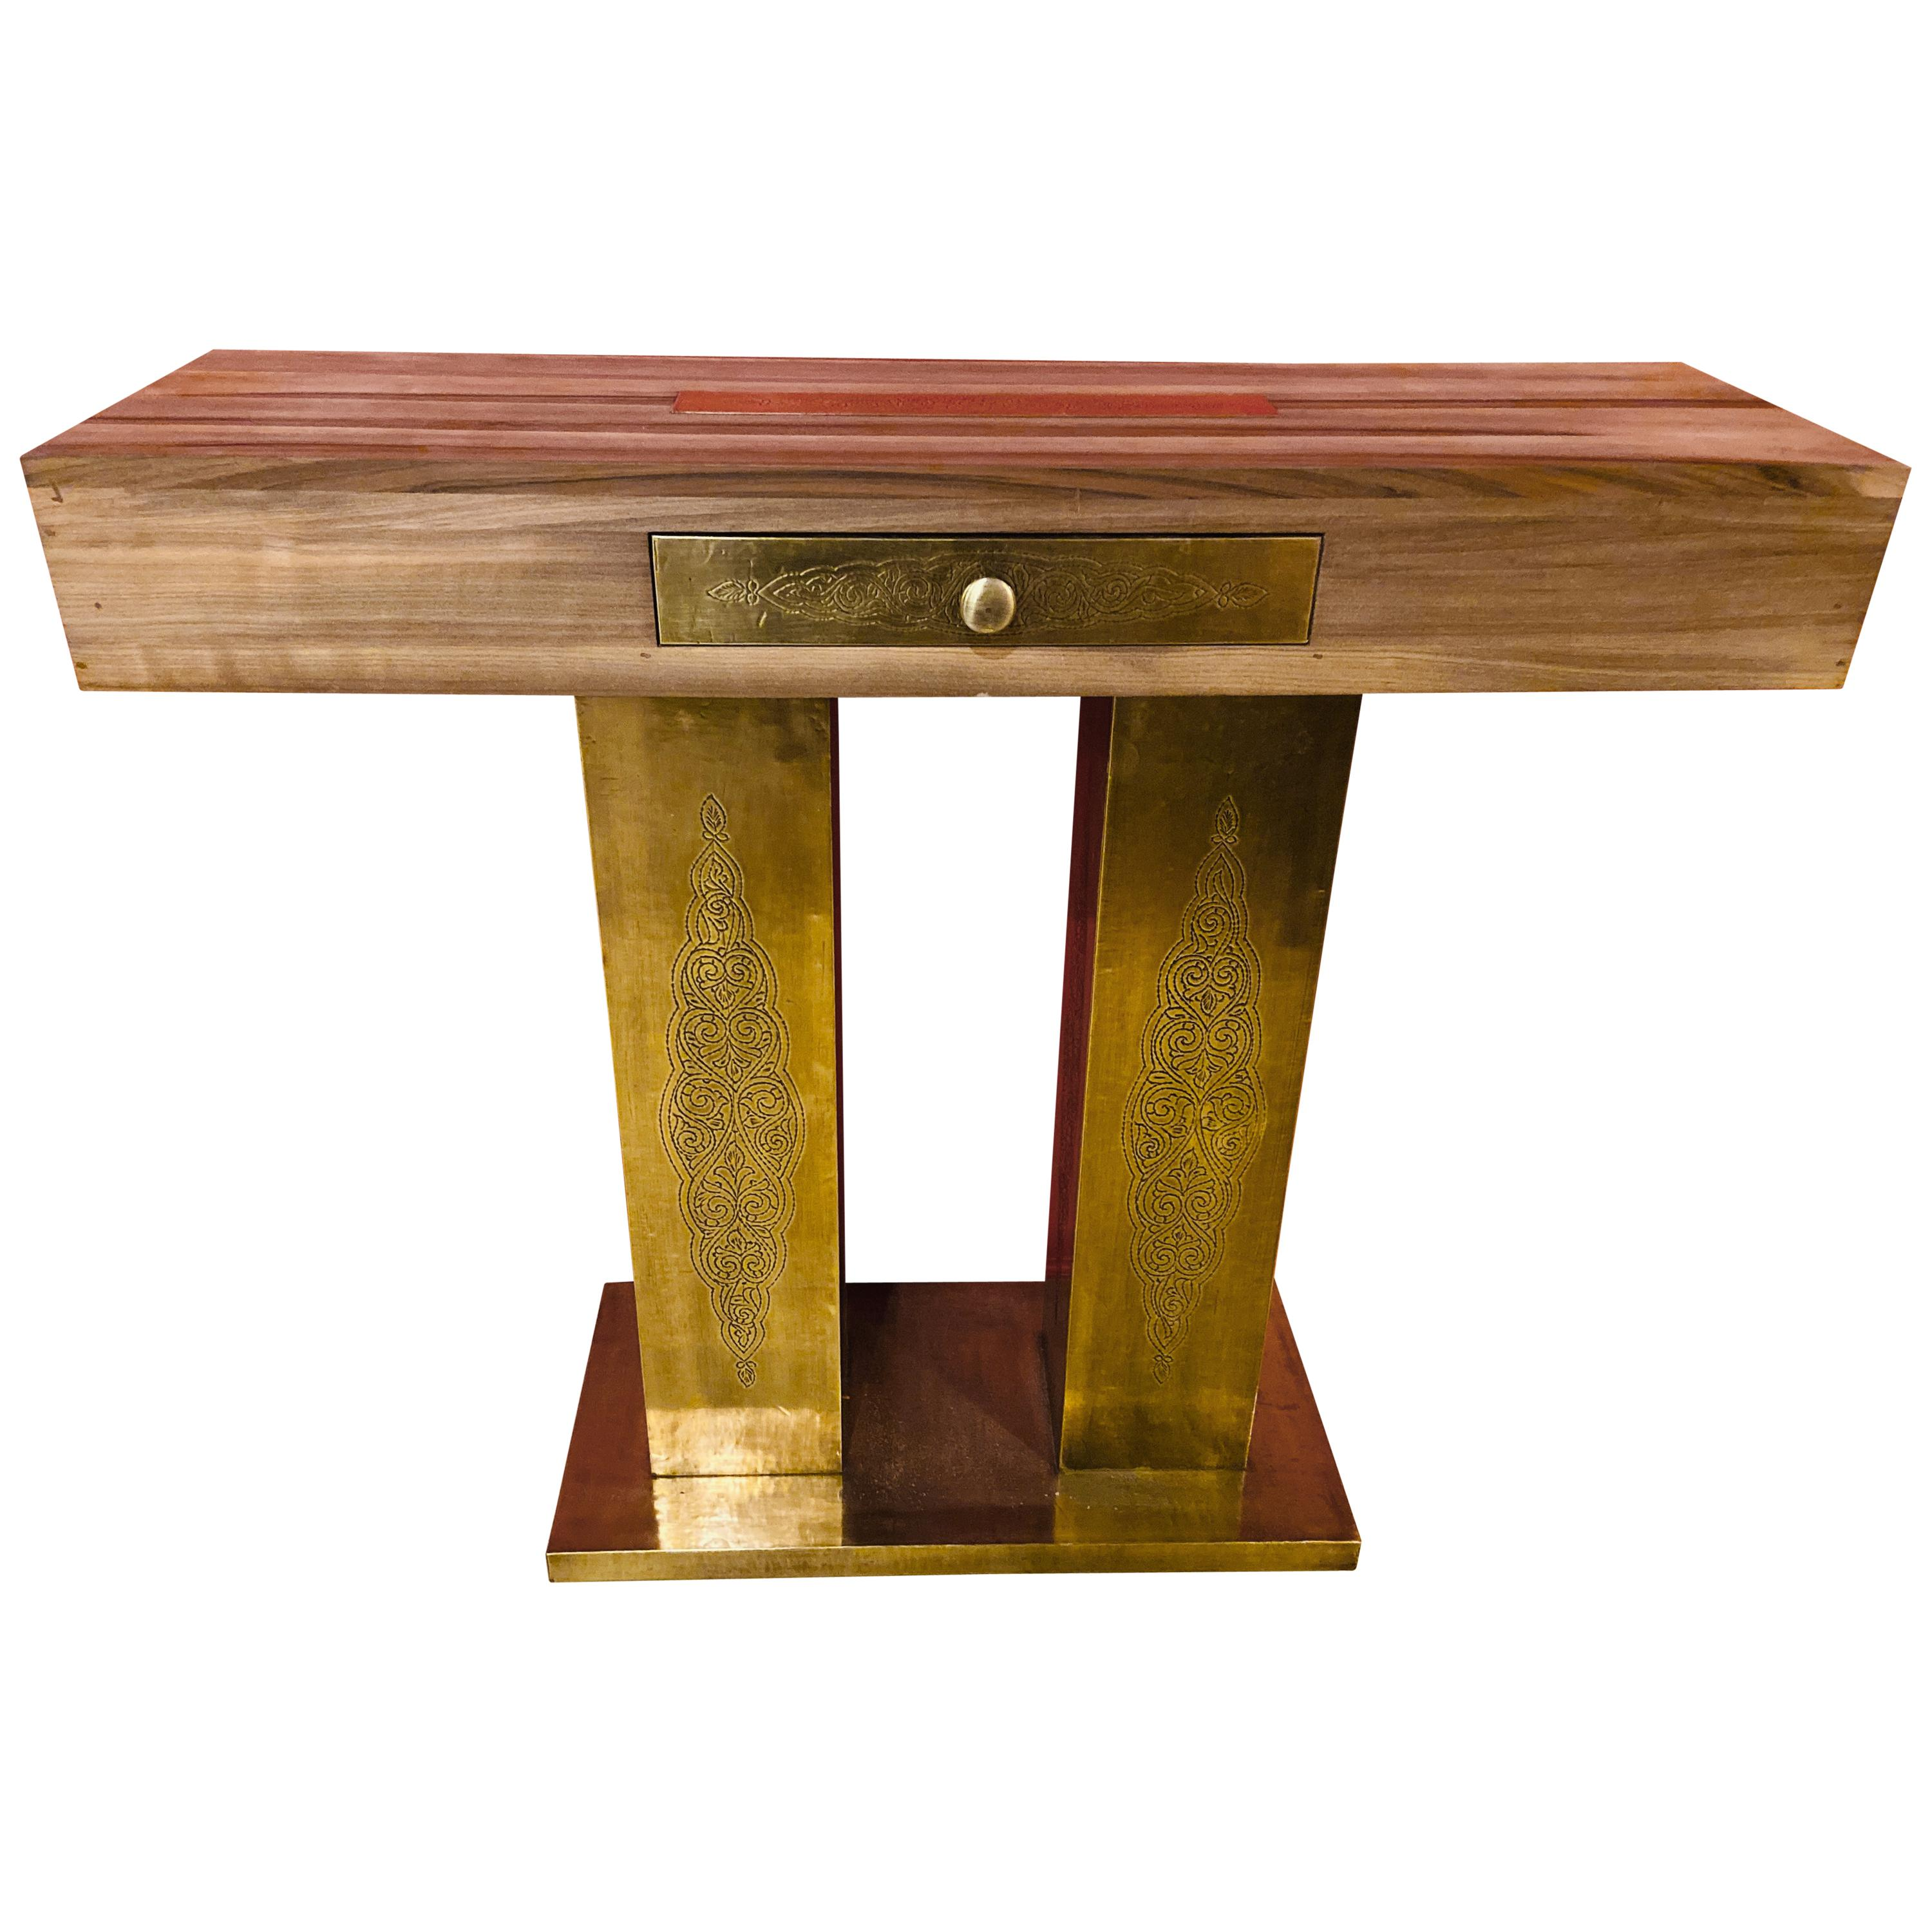 Hollywood Regency Style Console Table in Walnut and Brass